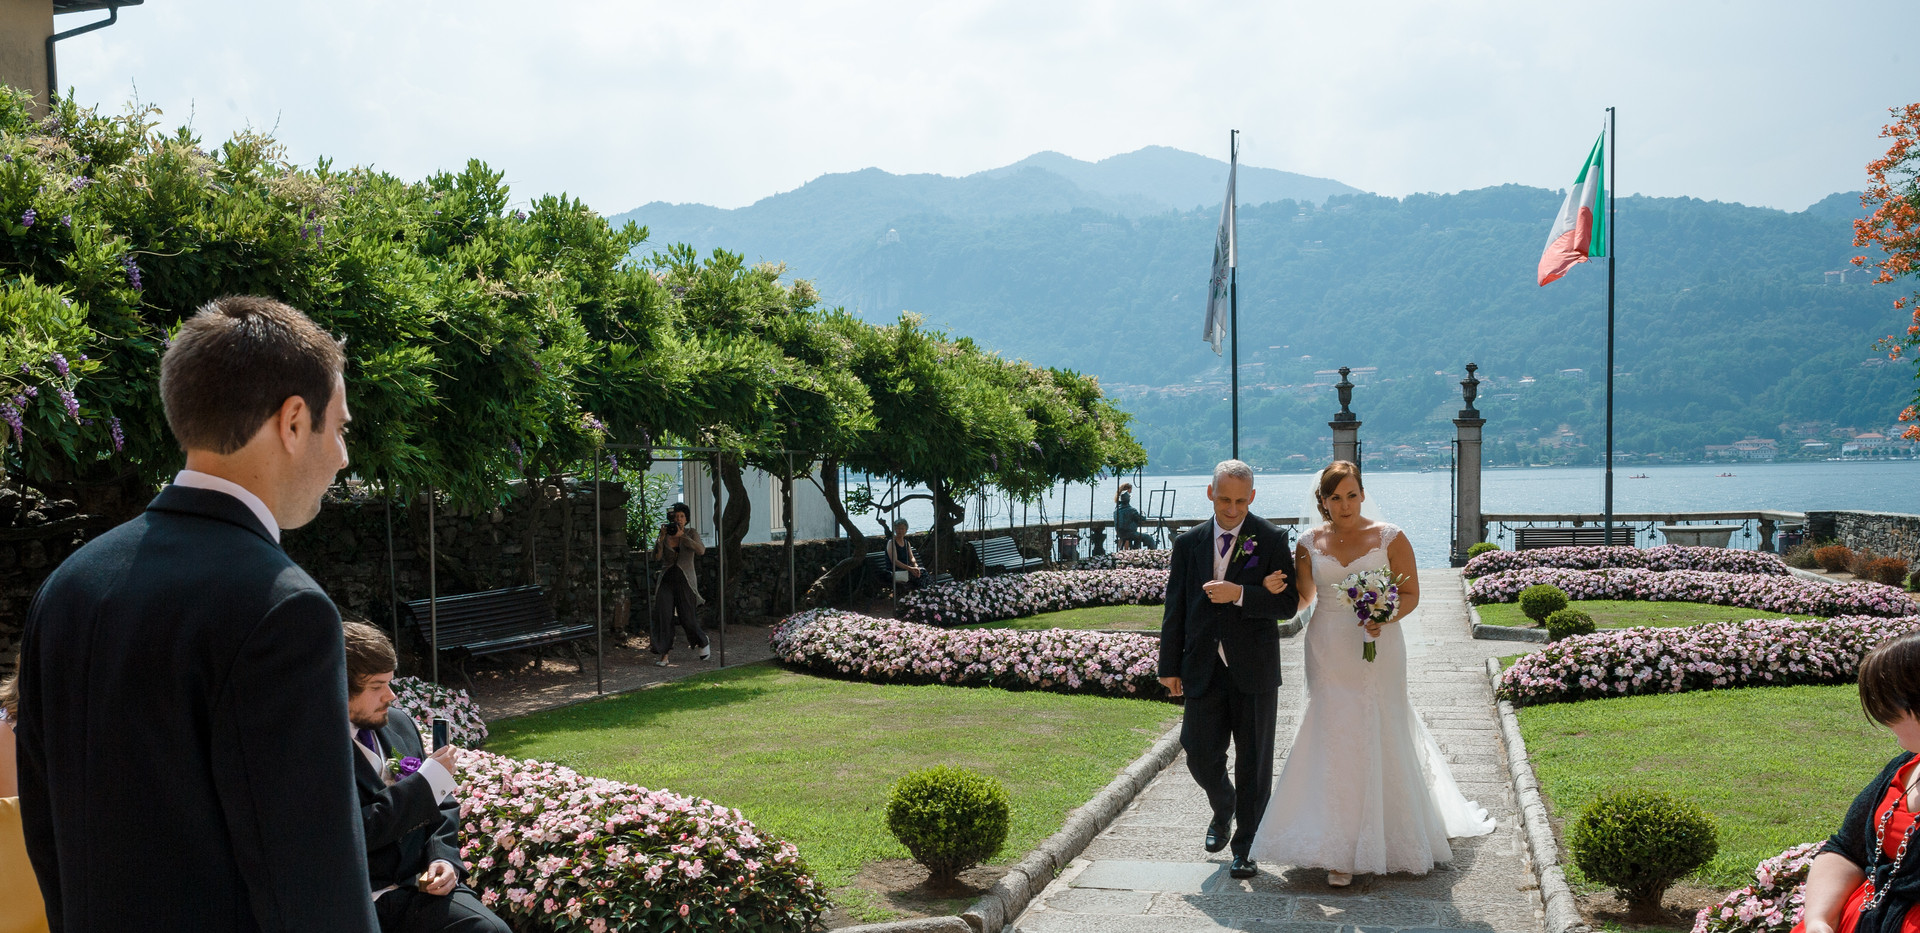 2. The bride and her father arrive at Vi